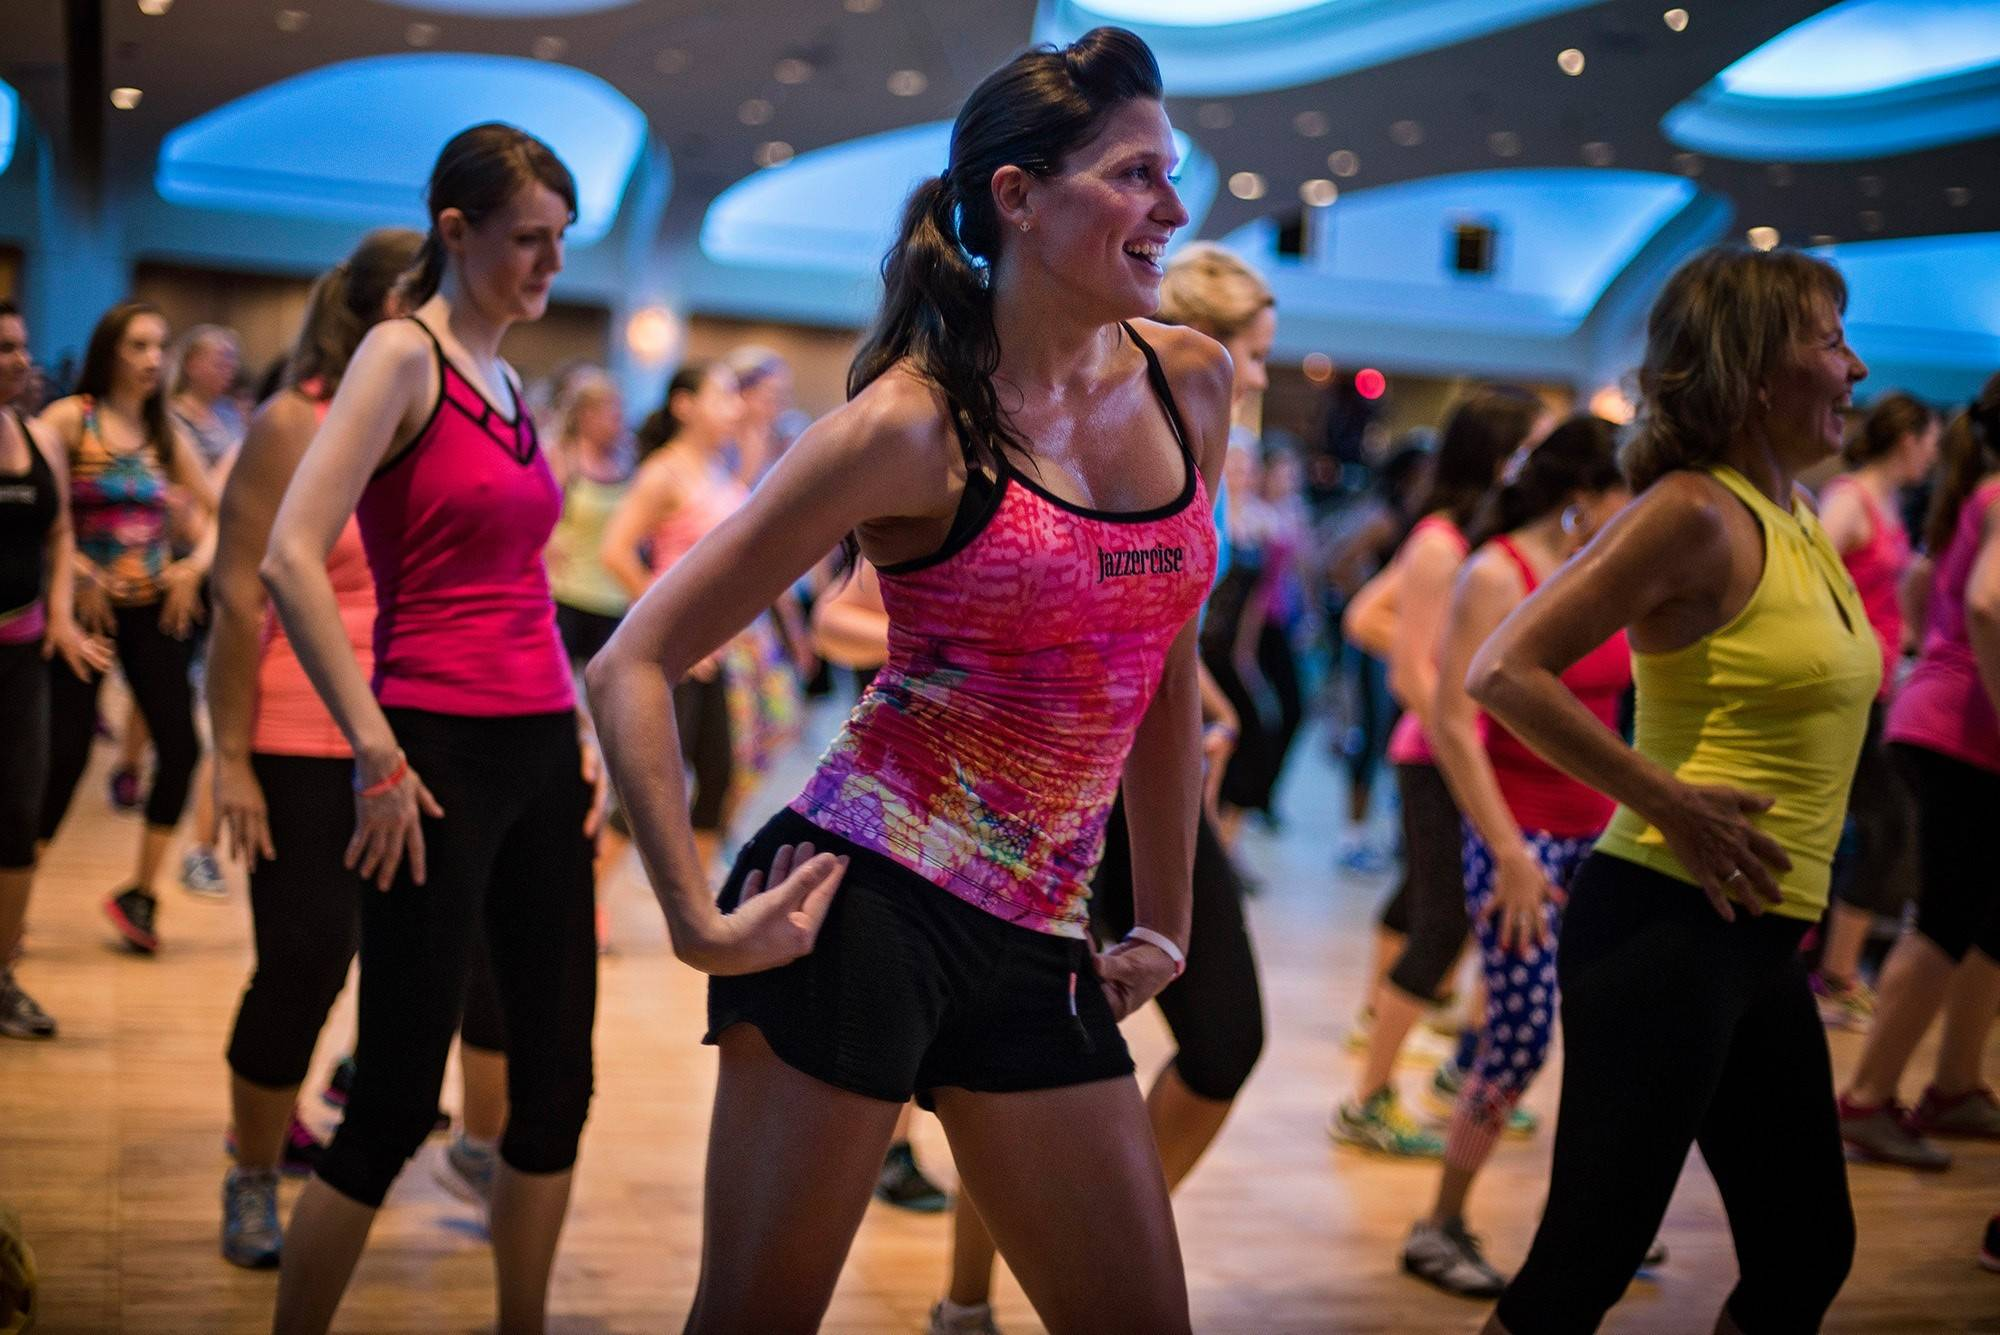 Kristen Smith dances at a Jazzercise Live event led by Jazzercise founder Judi Sheppard Missett.